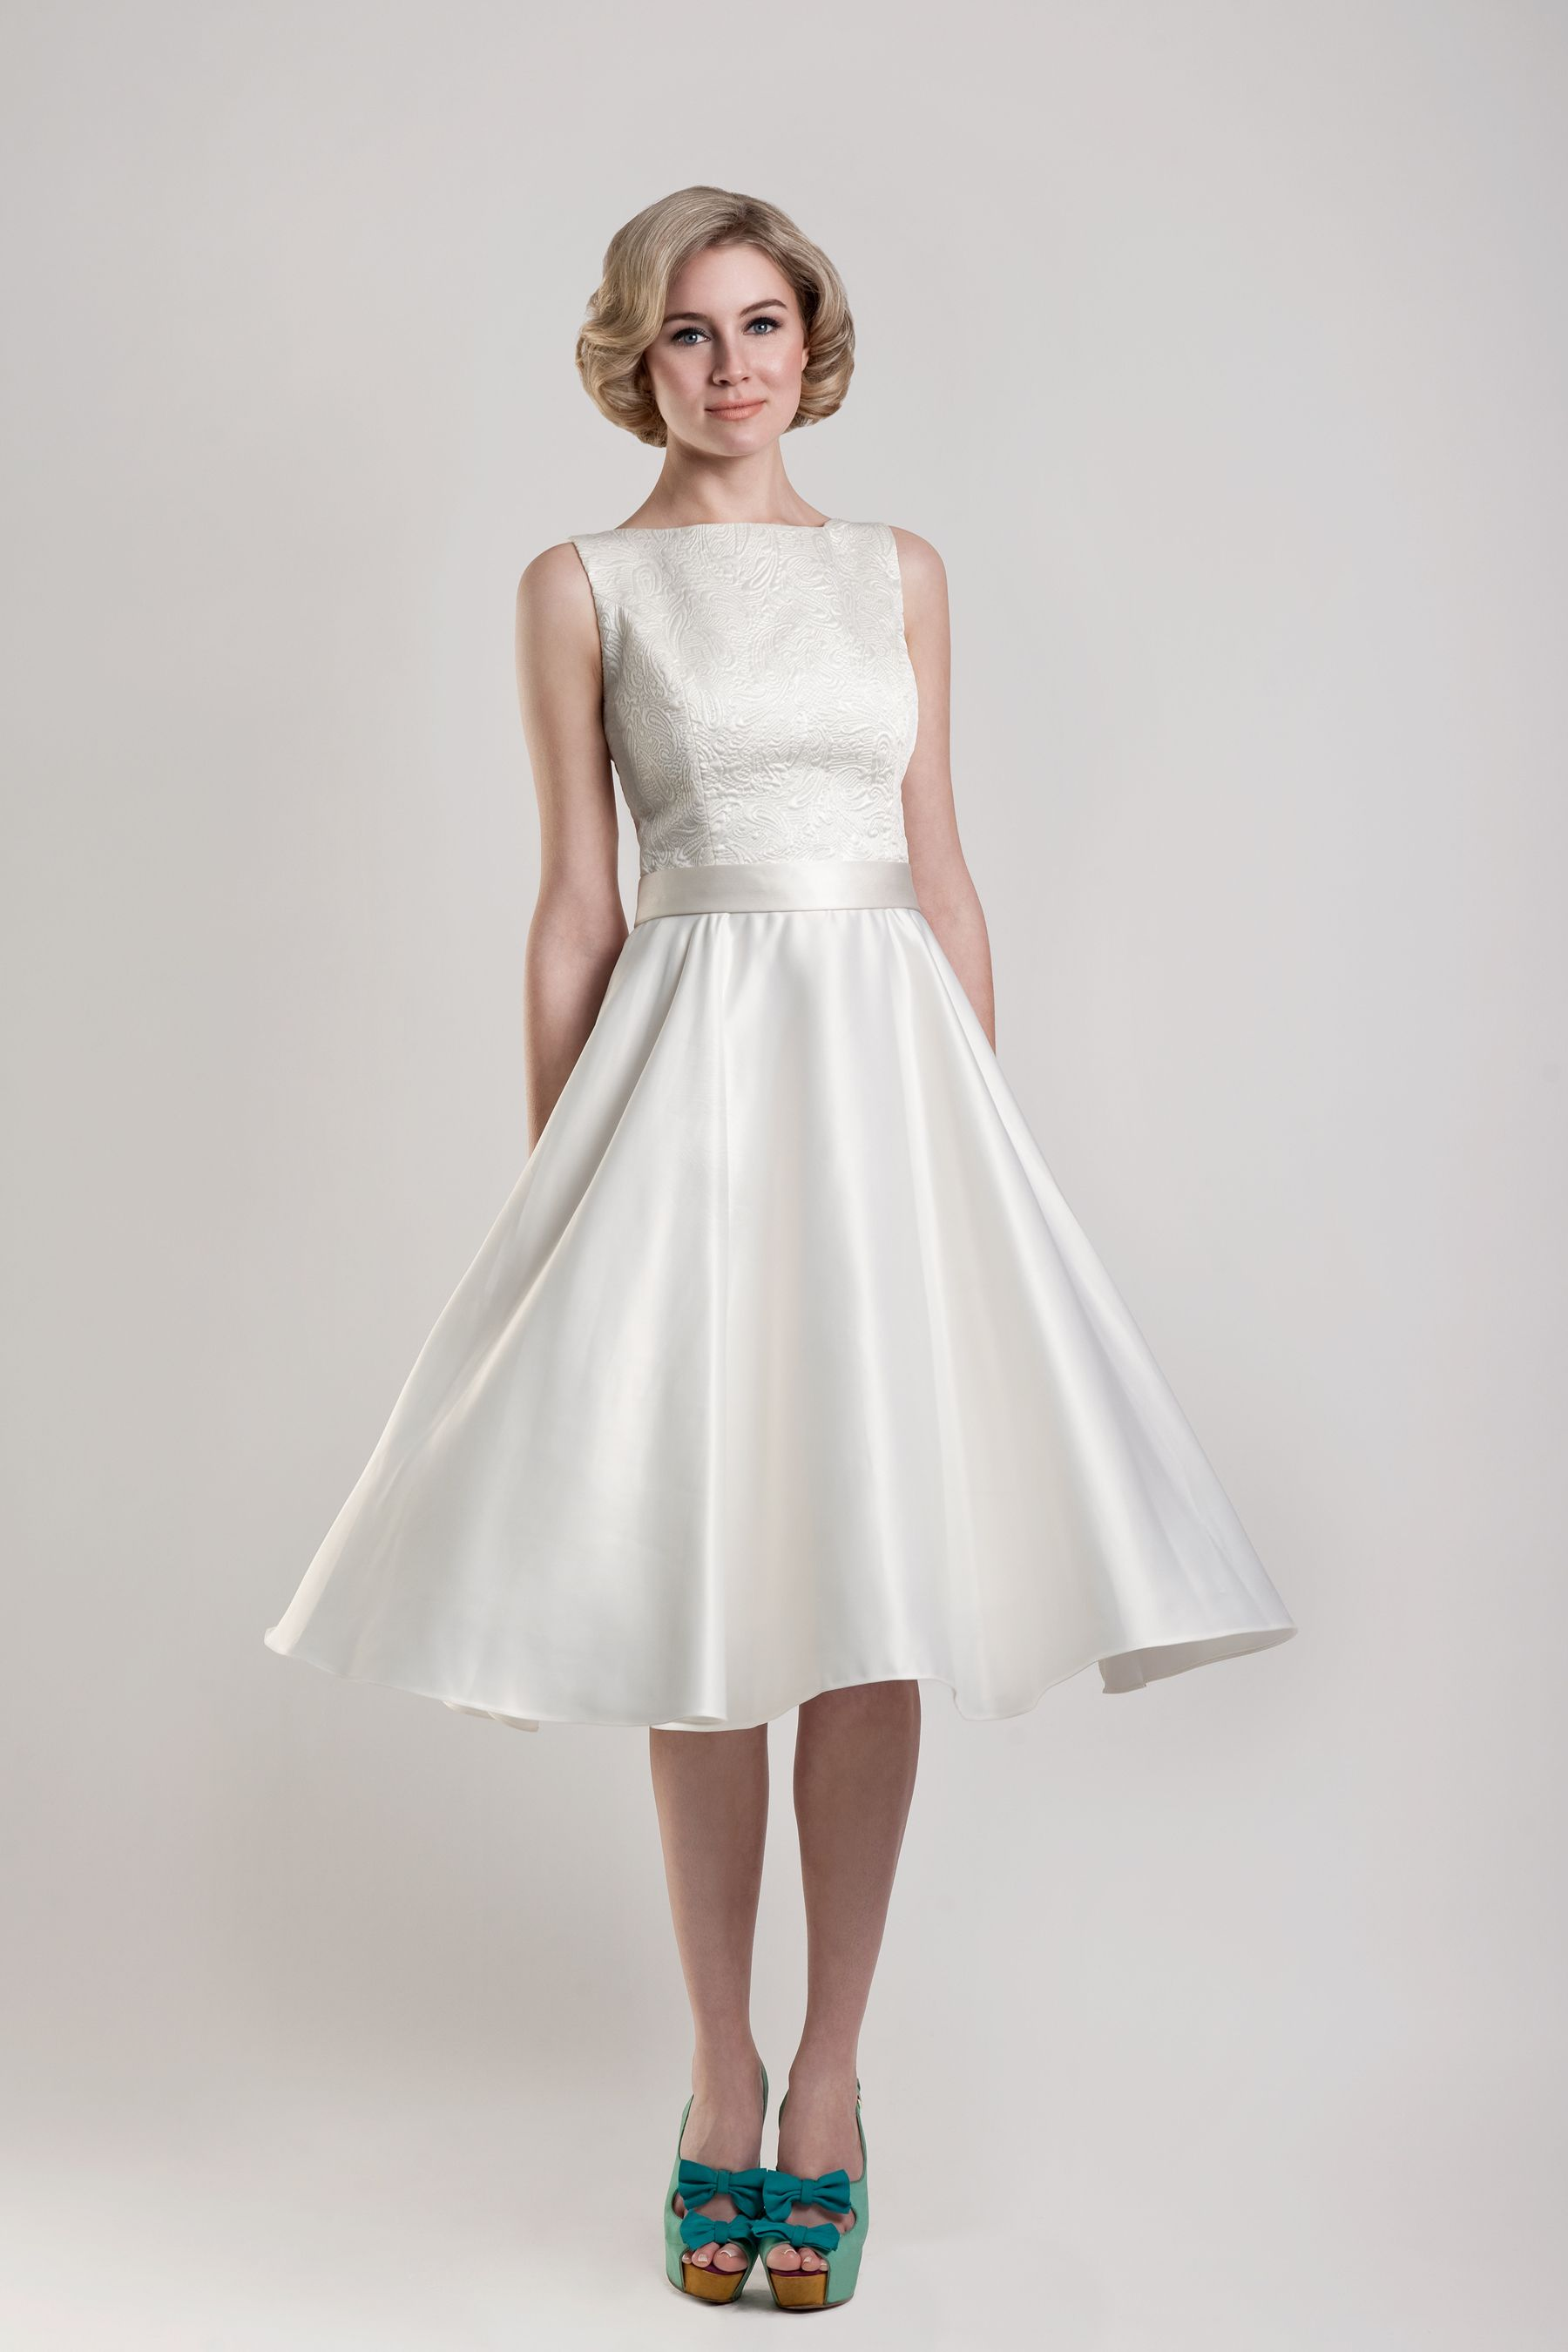 Tea Length Wedding Dresses,Short Wedding Dresses,1950s